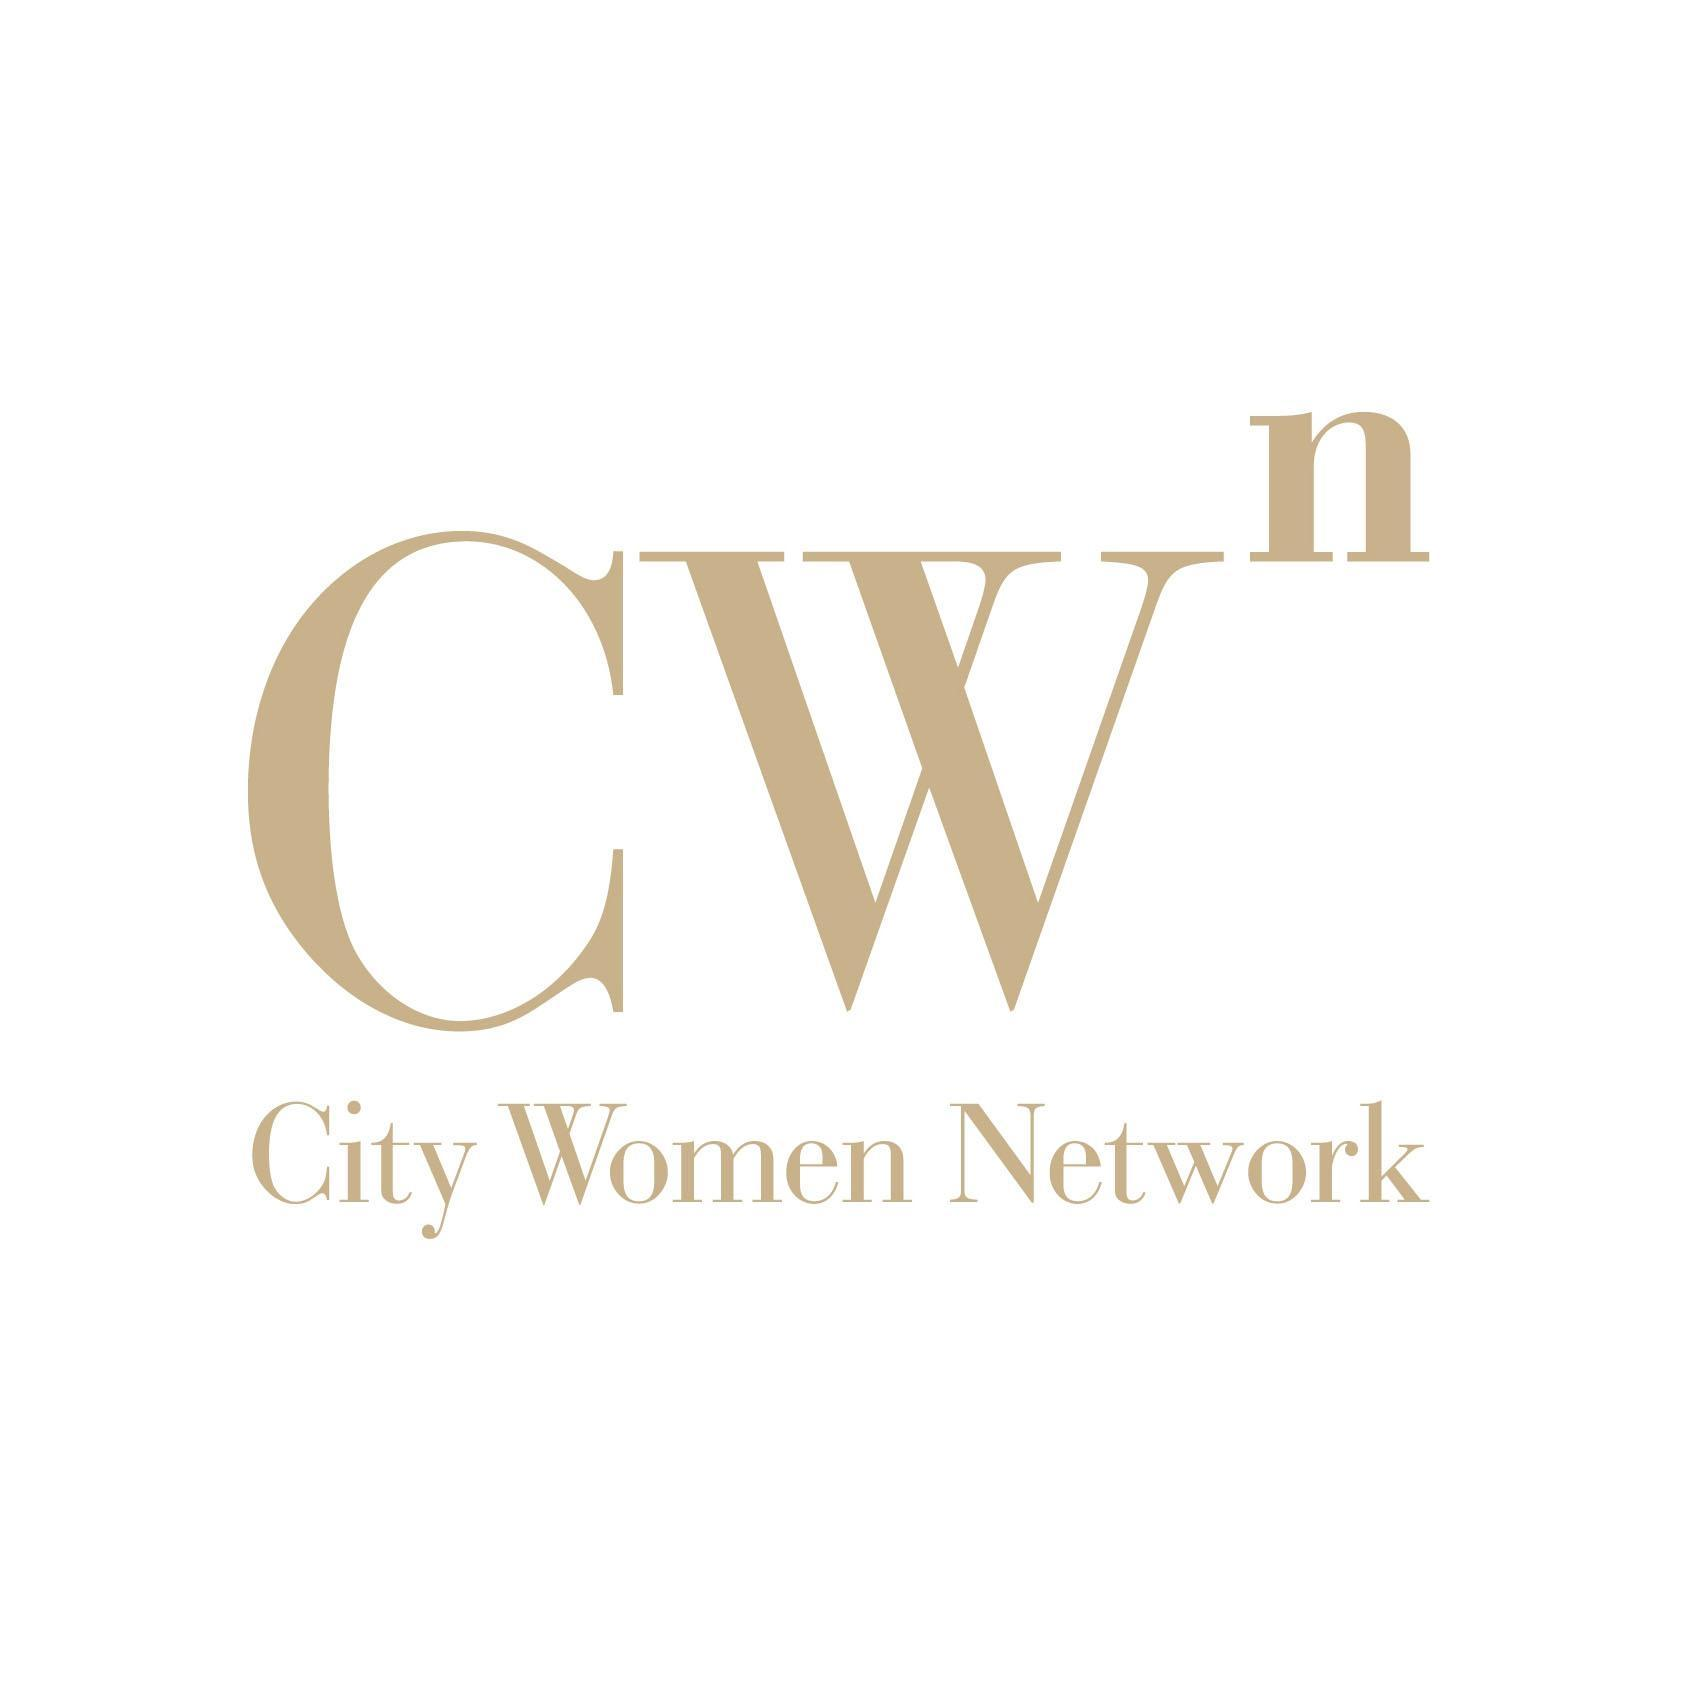 City Women Network